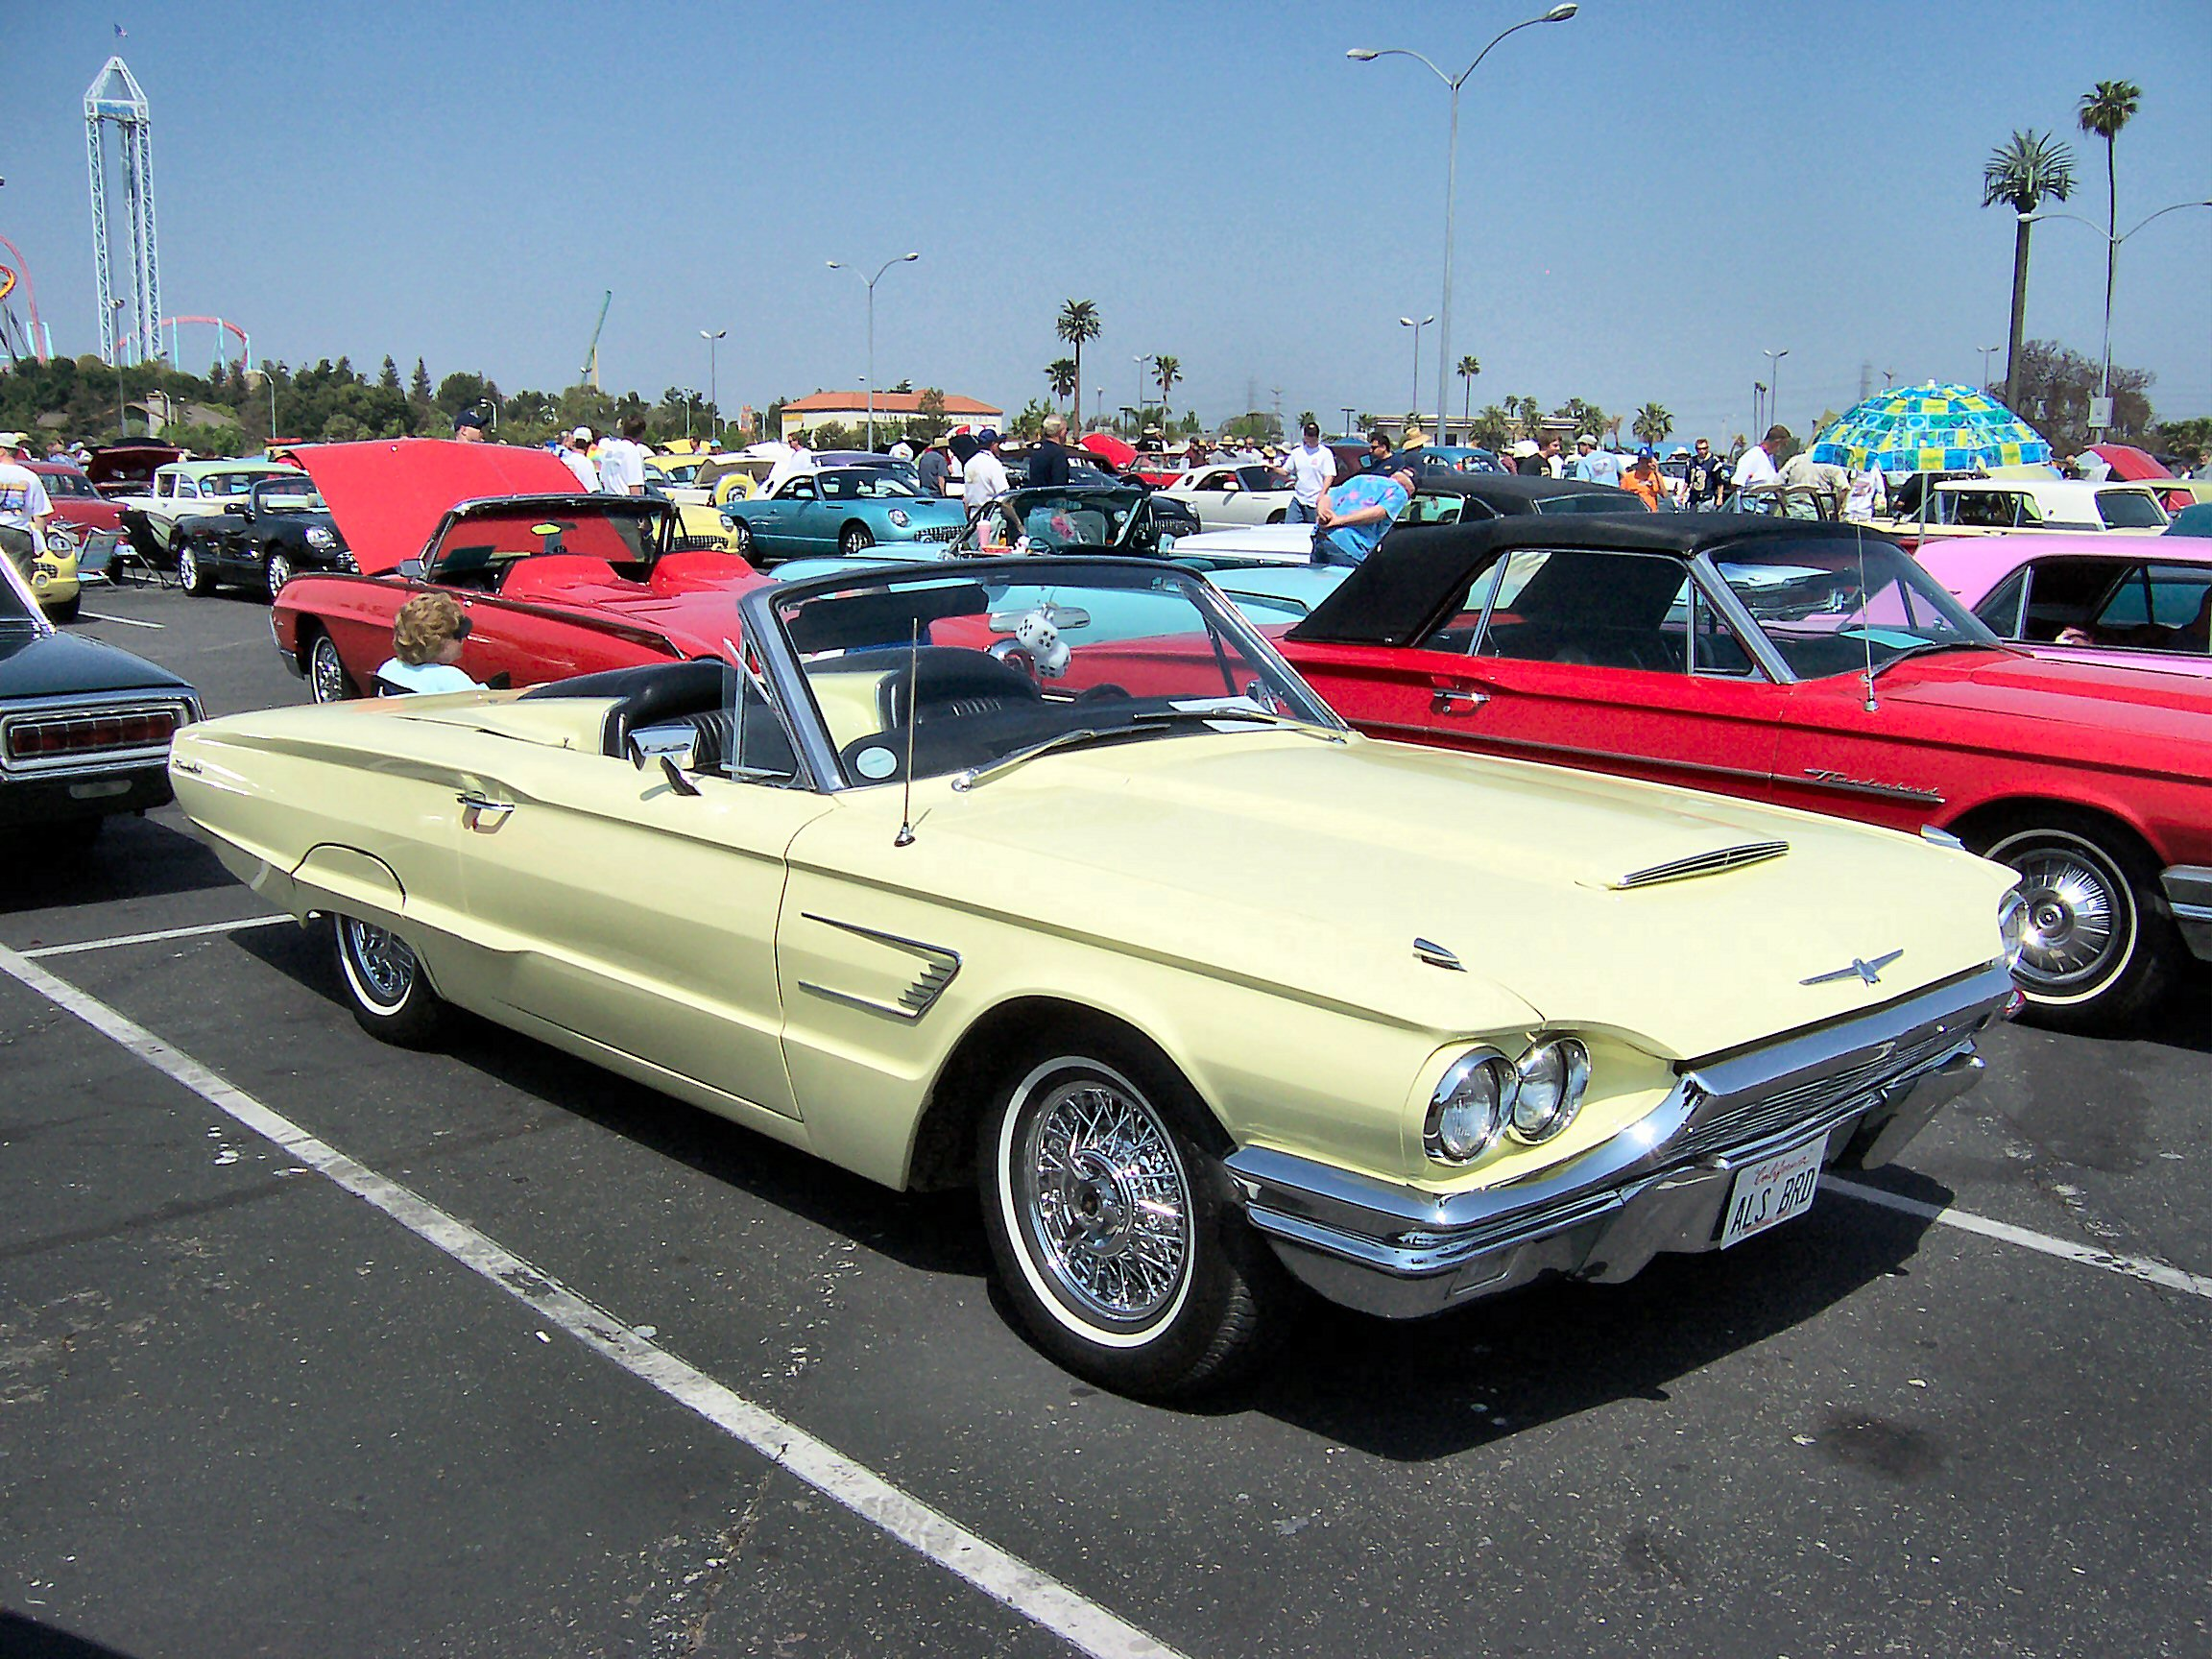 Ford Thunderbird #8